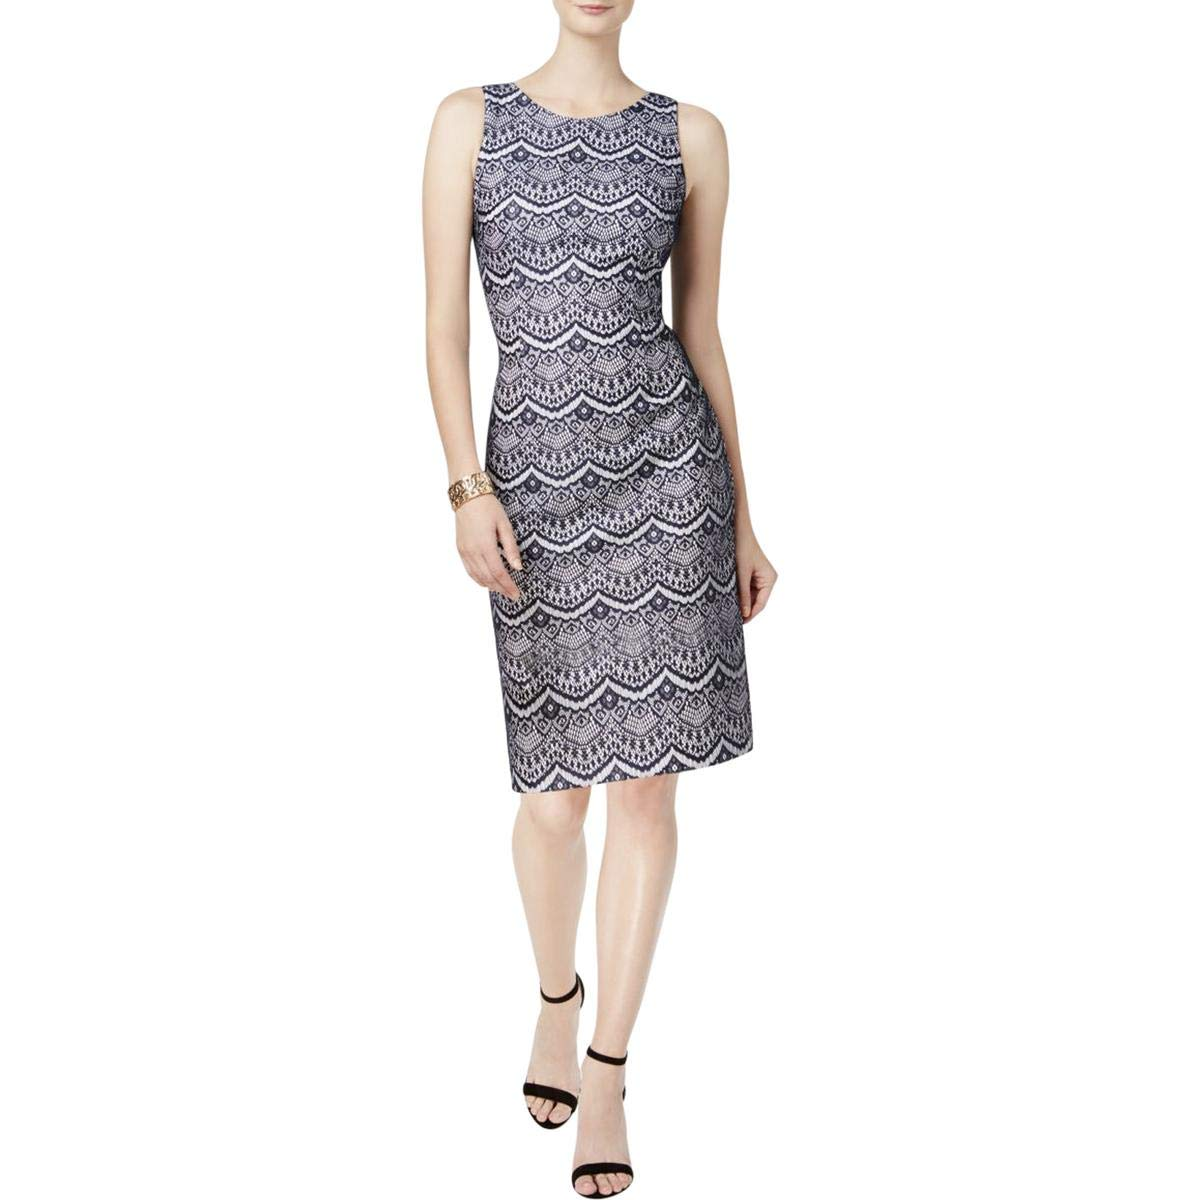 Jessica Simpson Women's Bonded Lace Dress, Navy/White, 4 by Jessica Simpson (Image #1)